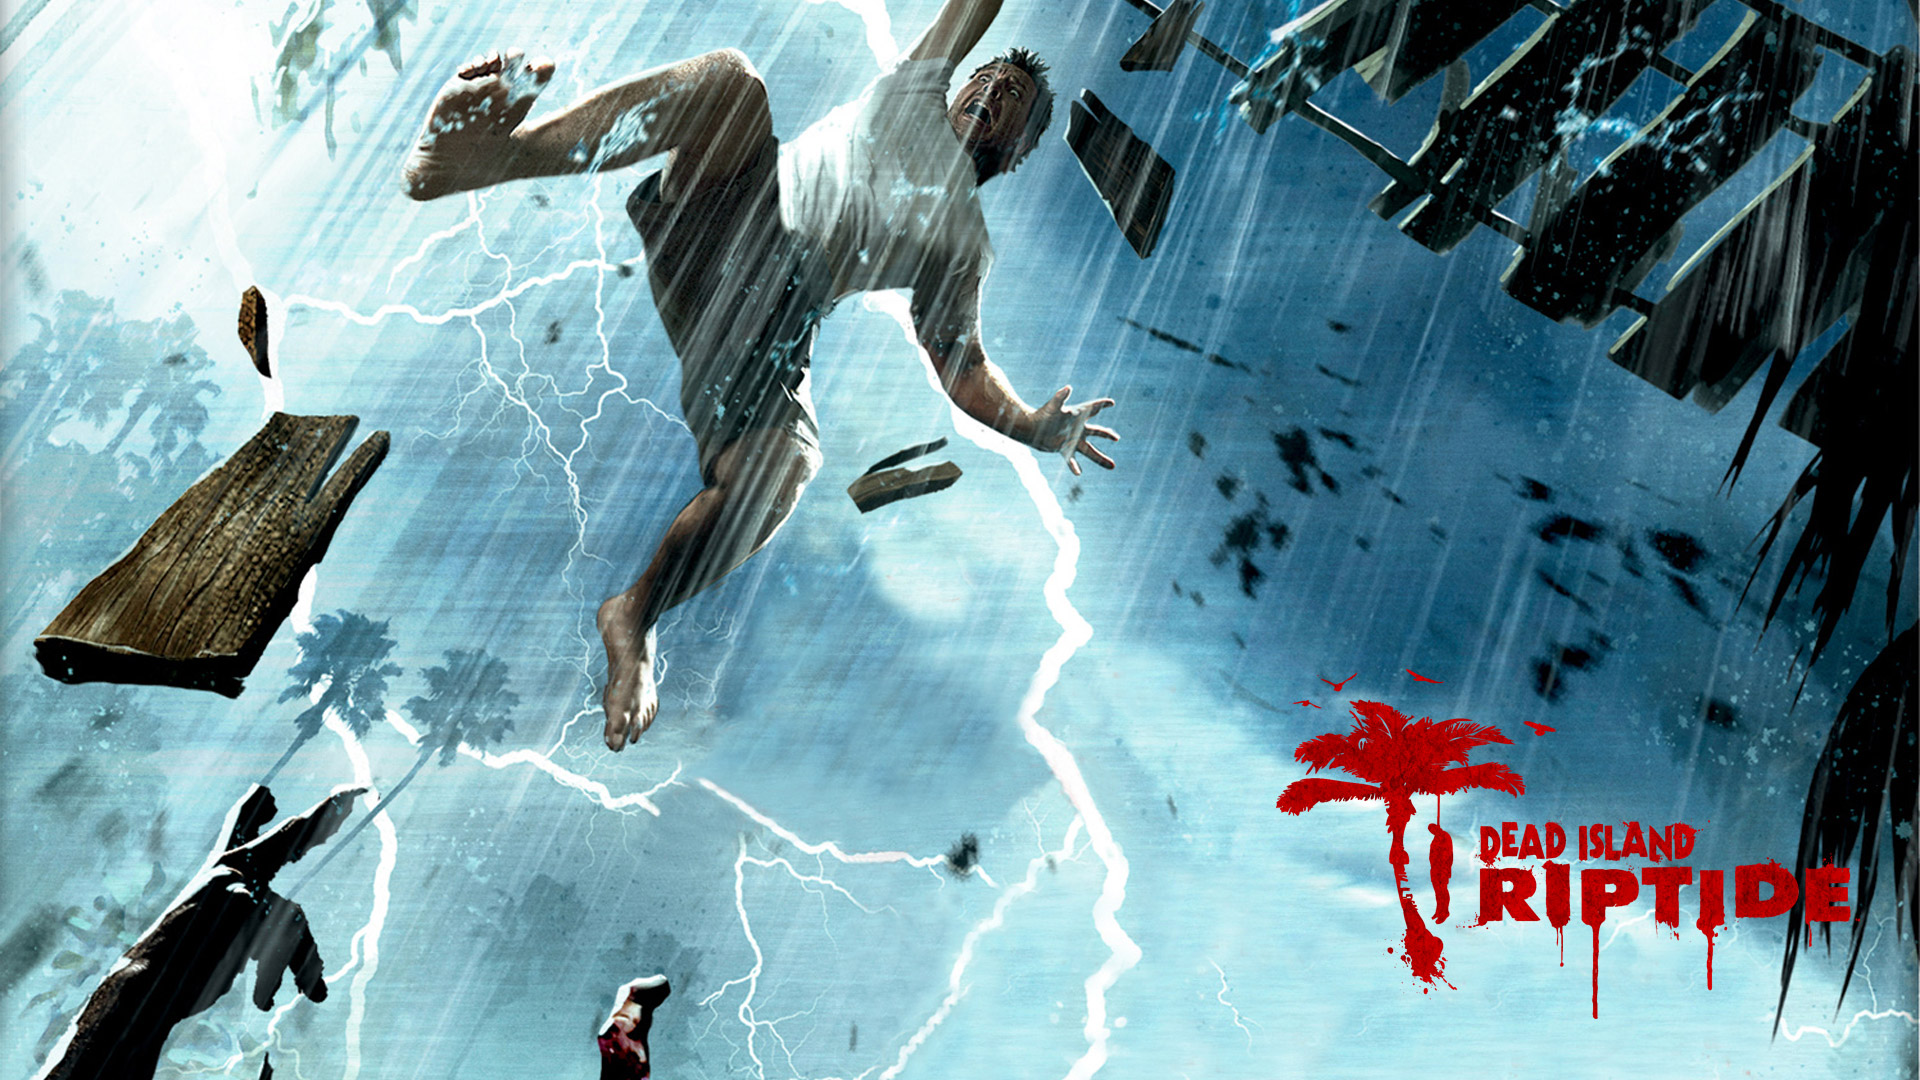 Free Dead Island: Riptide Wallpaper in 1920x1080